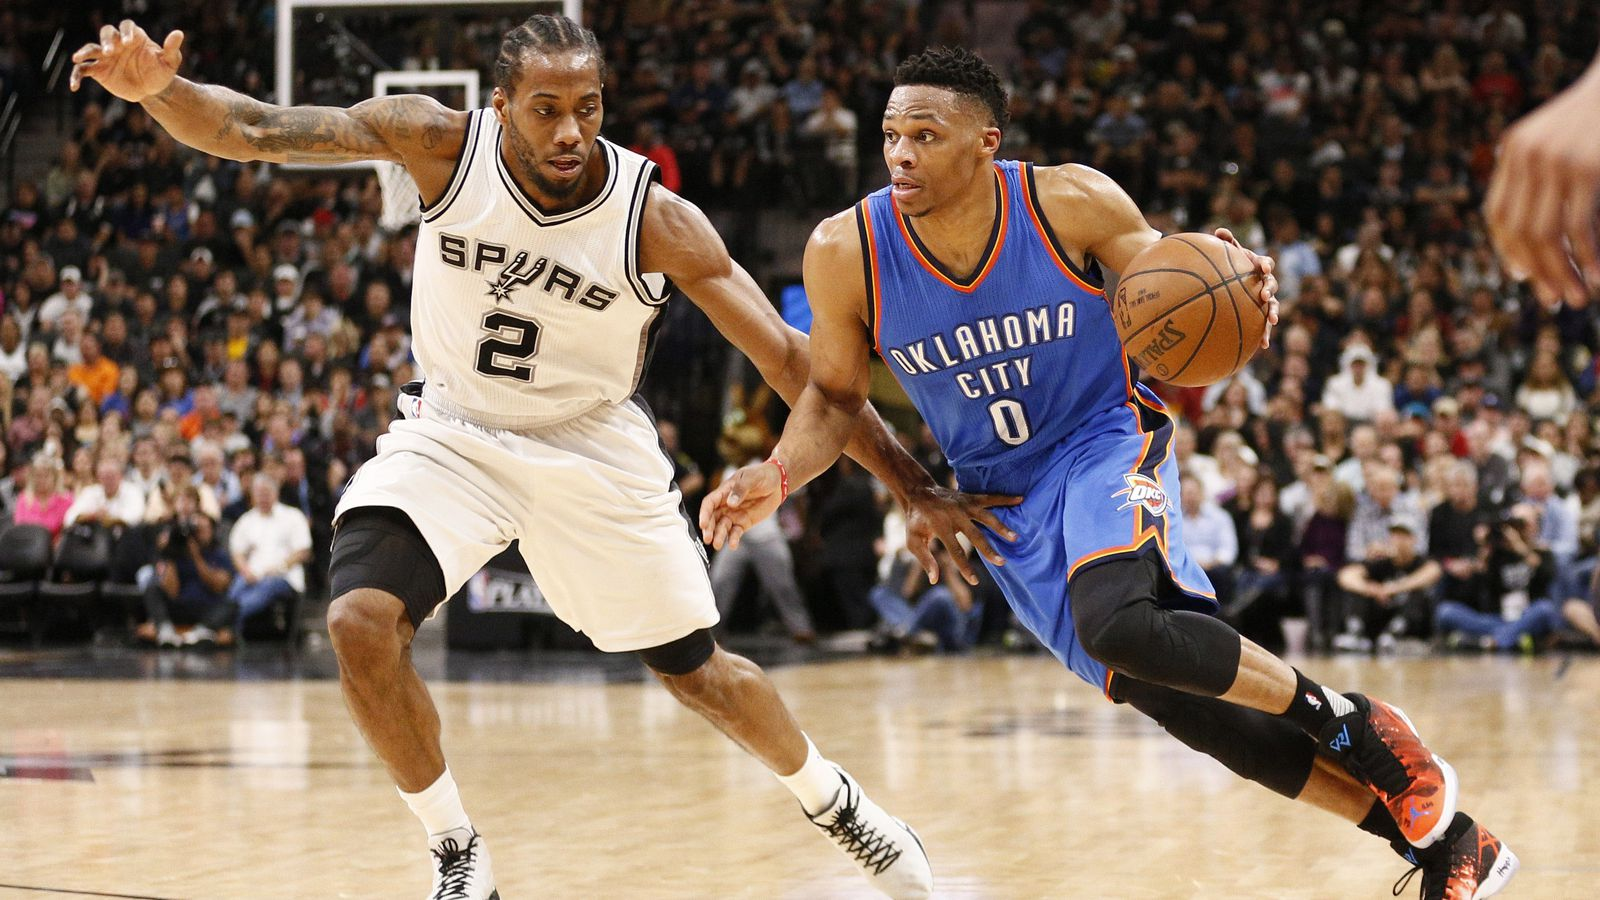 Spurs vs. Thunder, NBA playoffs 2016: Start time, TV schedule and live stream for Game 3